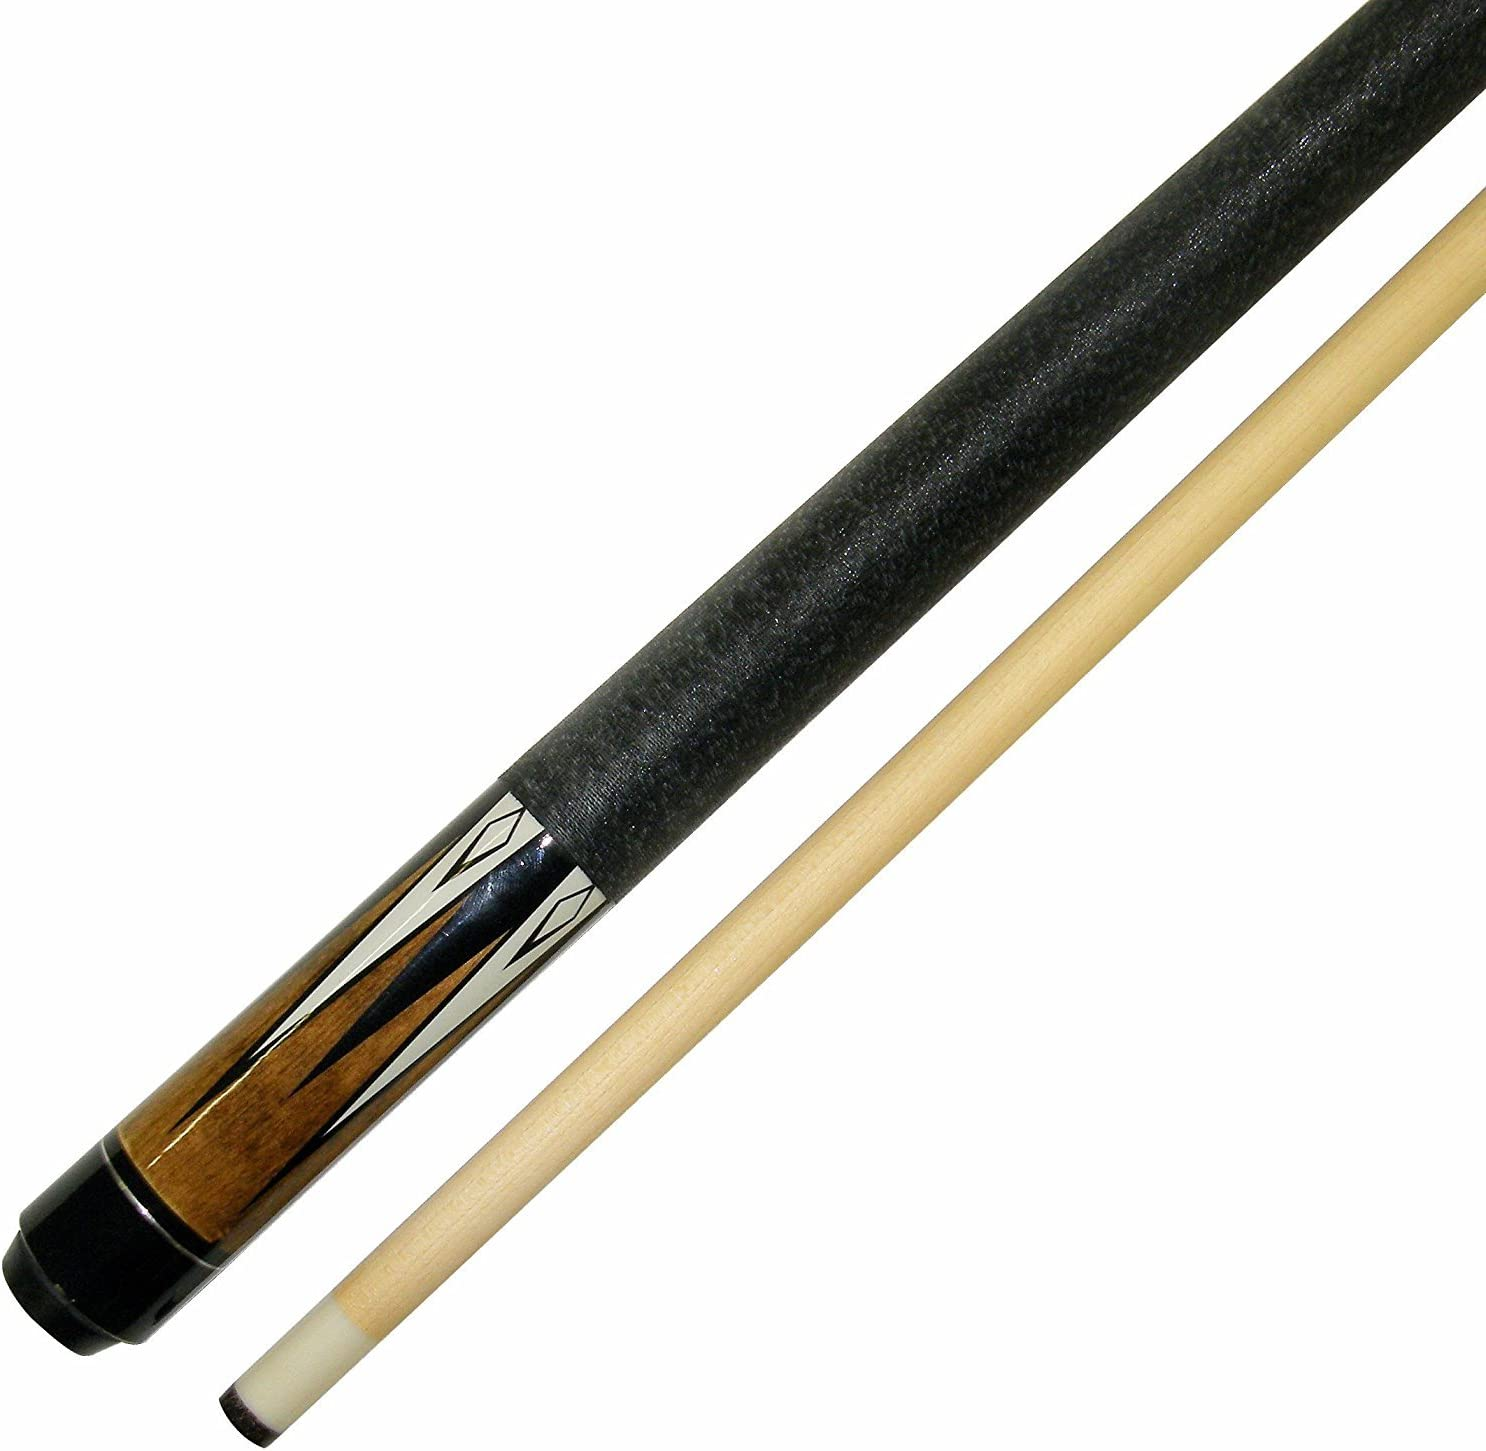 "Short 42"" 2 Piece Hardwood Maple Pool Cue - Billiard Stick Several Colors To Choose From 16 - 17 Ounce"